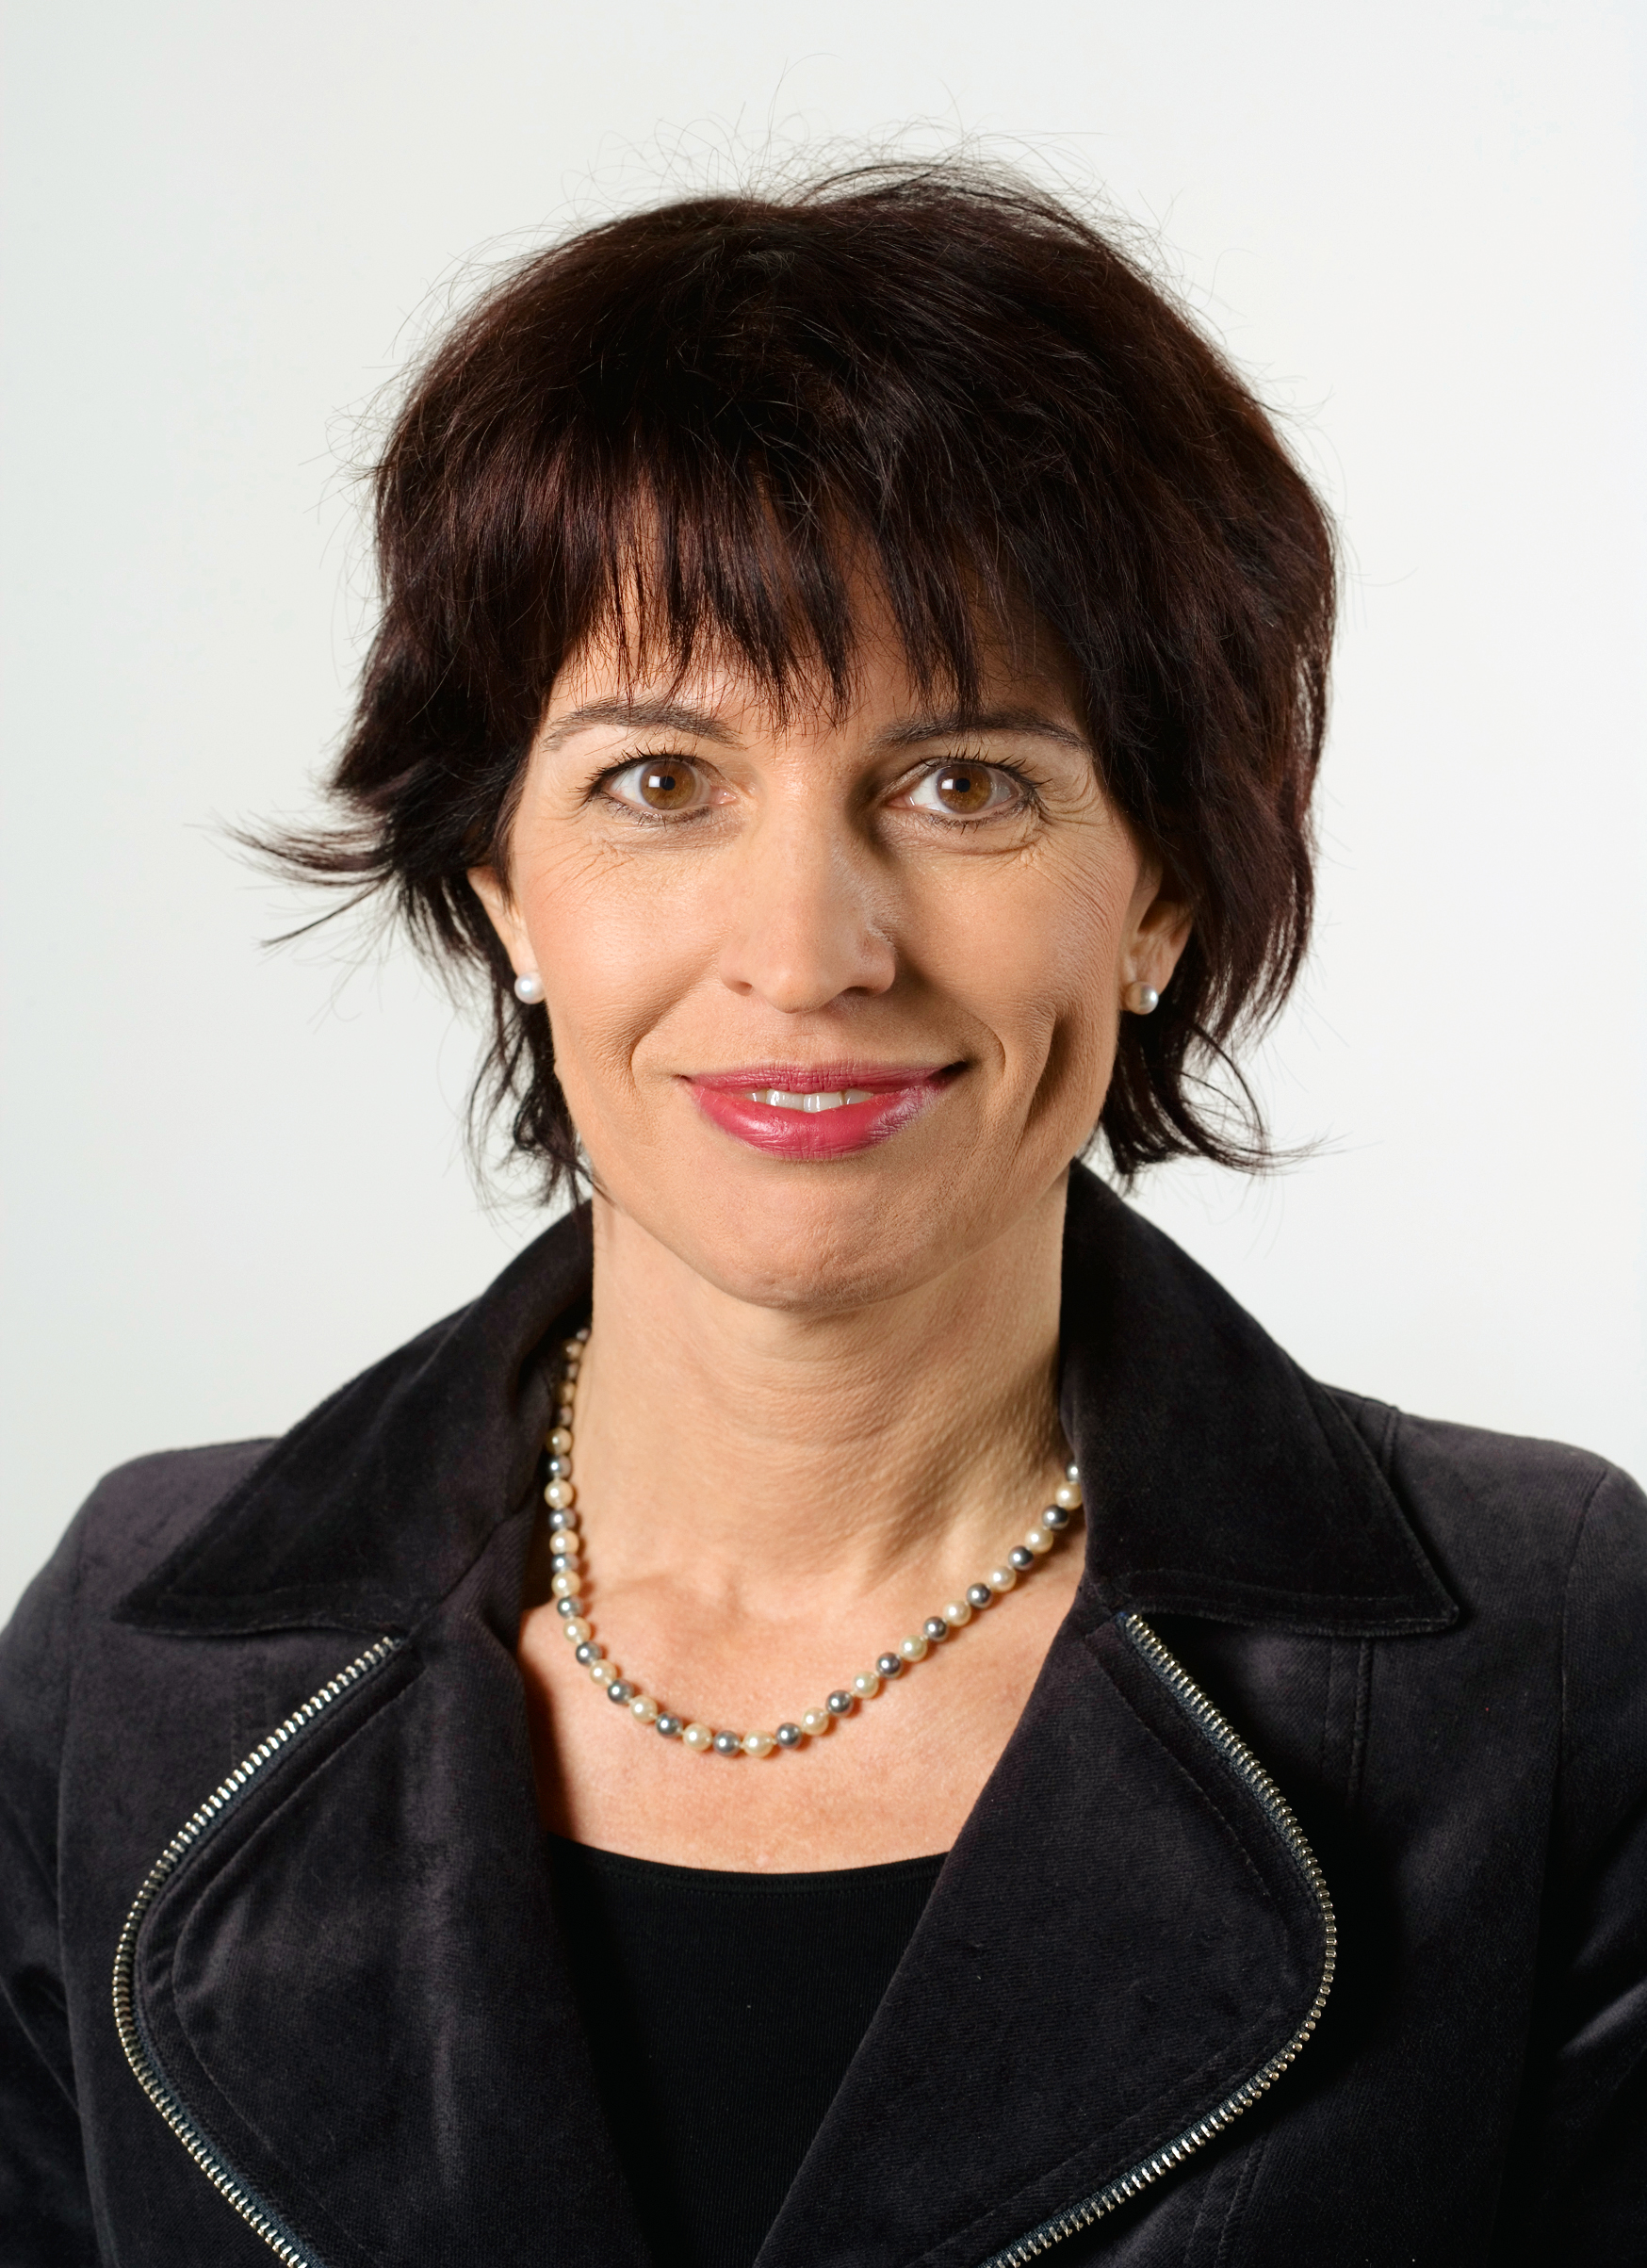 Doris leuthard on the distribution of power between business and ...